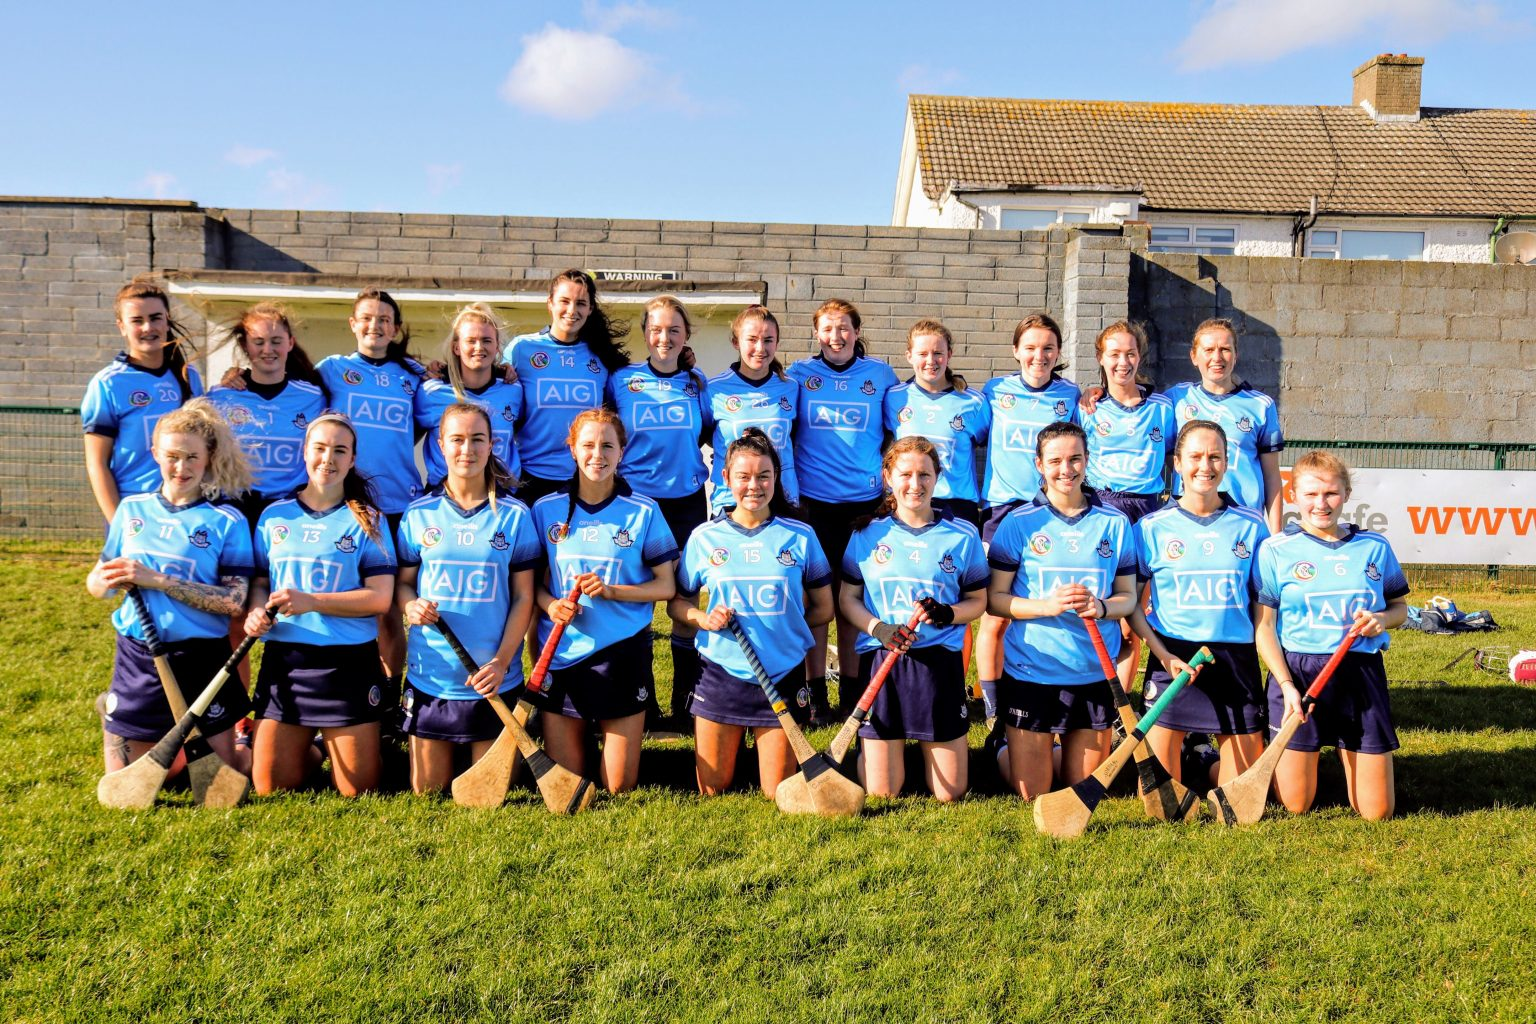 Dublin Intermediate Camogie Team in sky blue jerseys and navy skorts pose for team photo